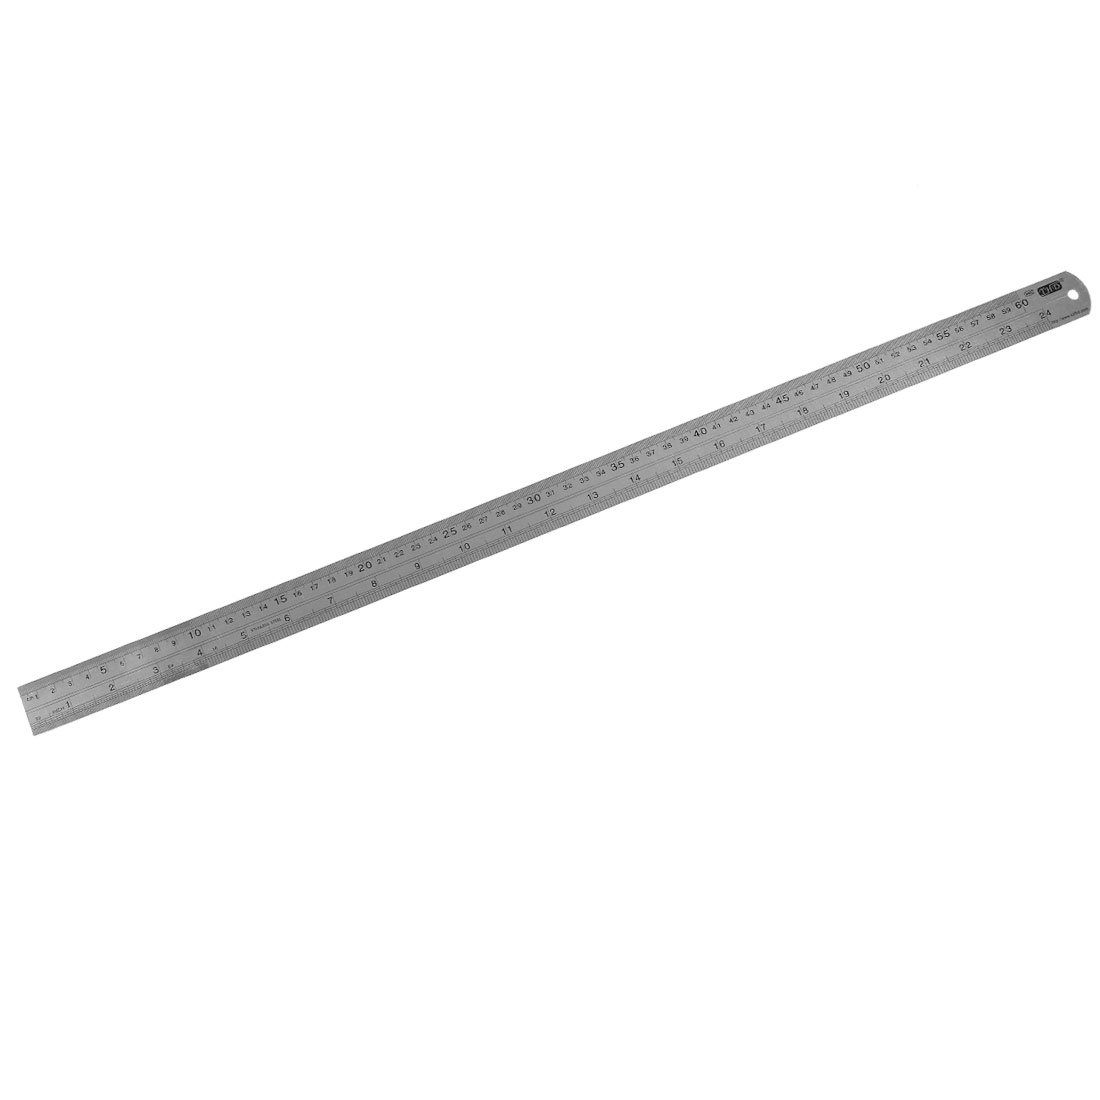 Stainless Steel 60cm 24 Inch Metric Straight Ruler Measuring Tool